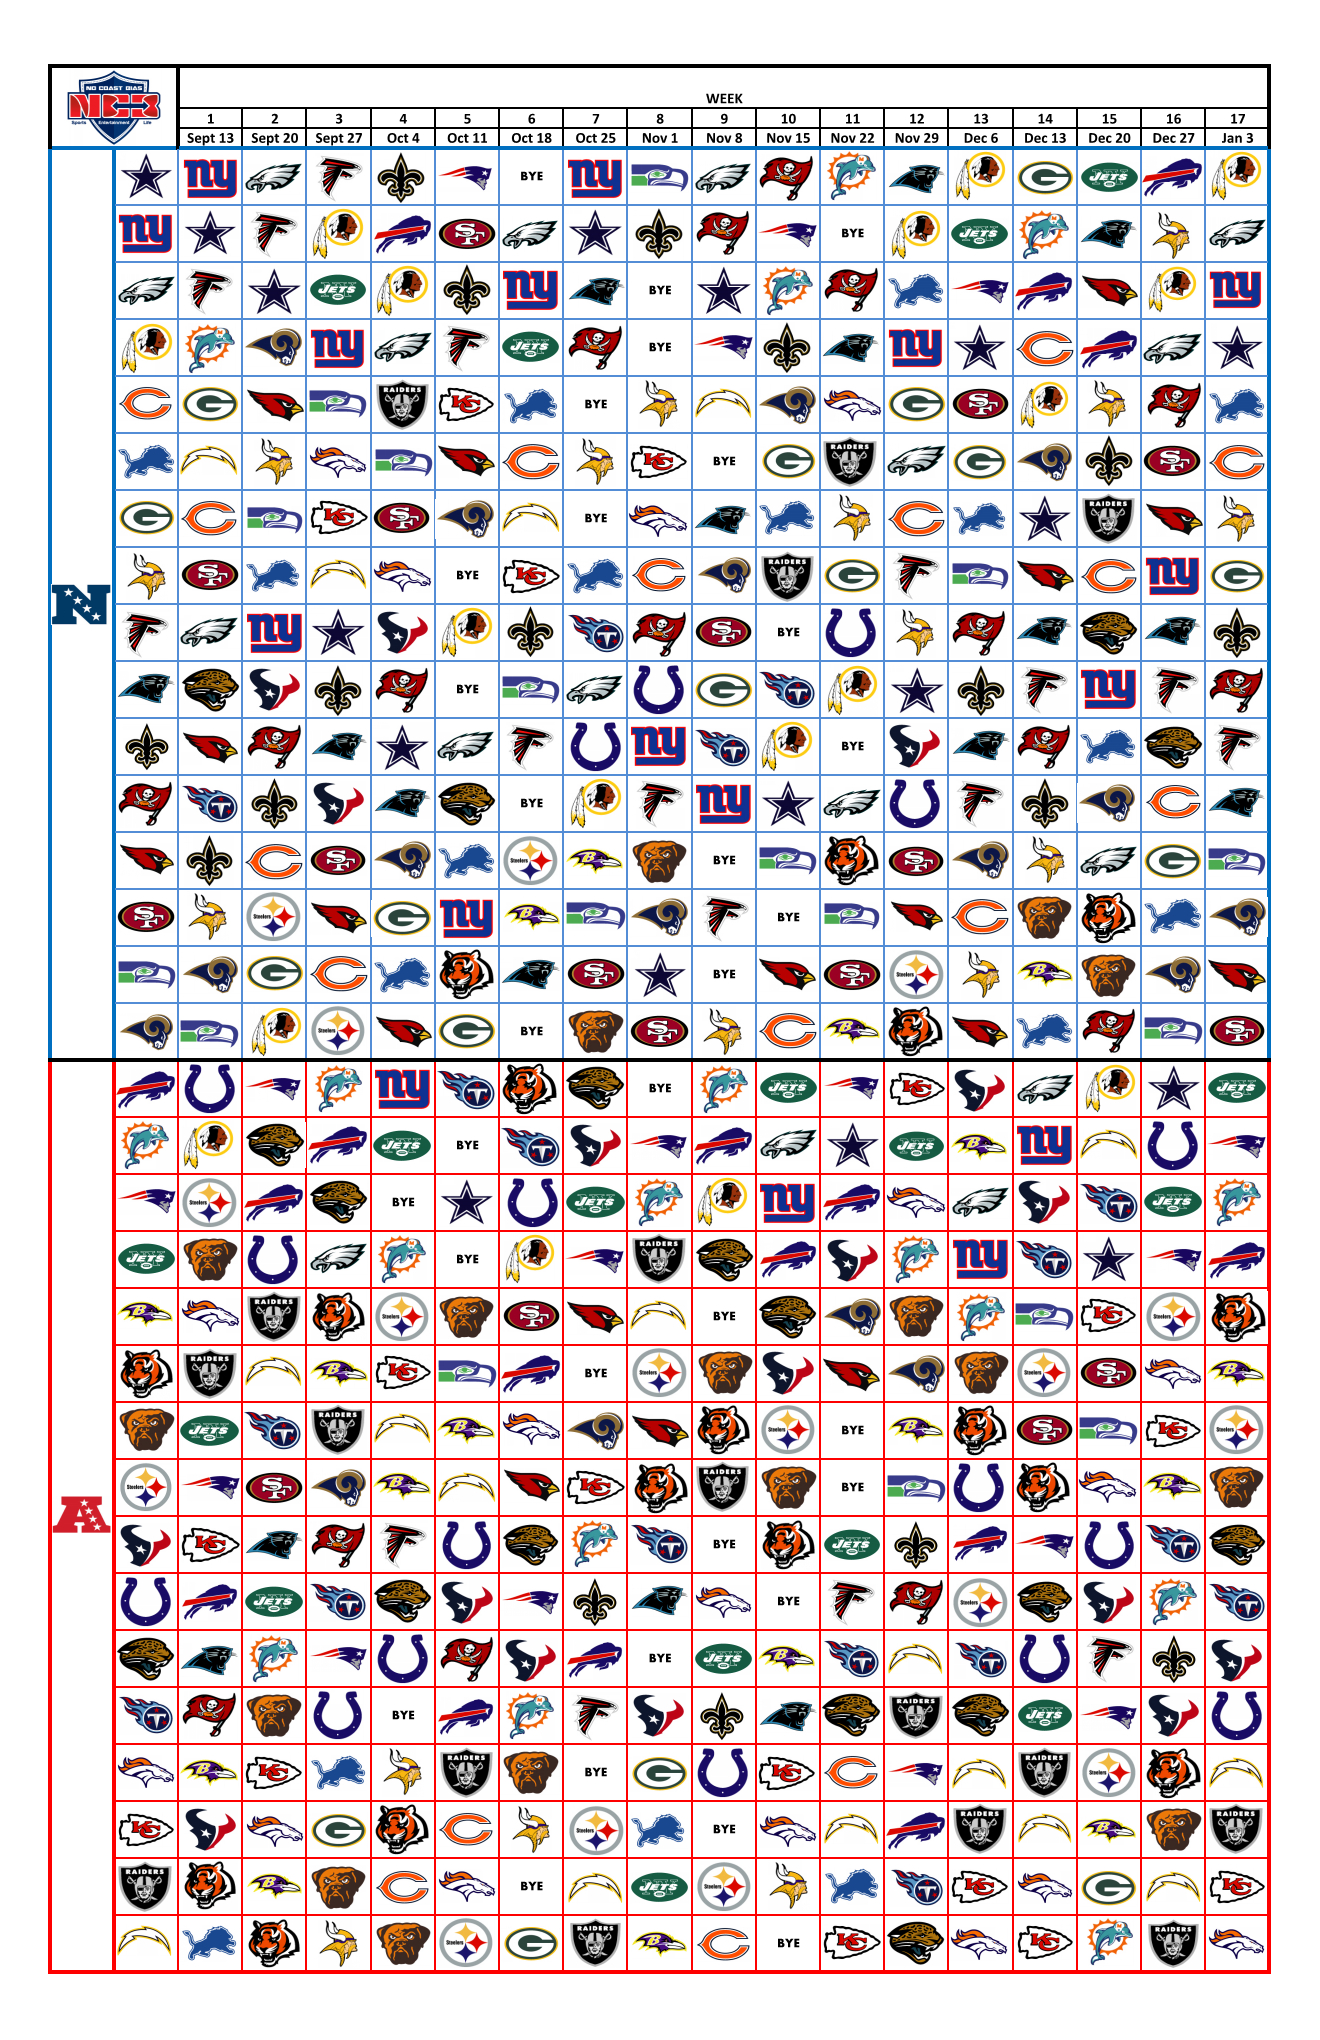 2015 Nfl Graphic Schedule (Printable) – No Coast Bias with 1 Page Printable Nfl Schedule